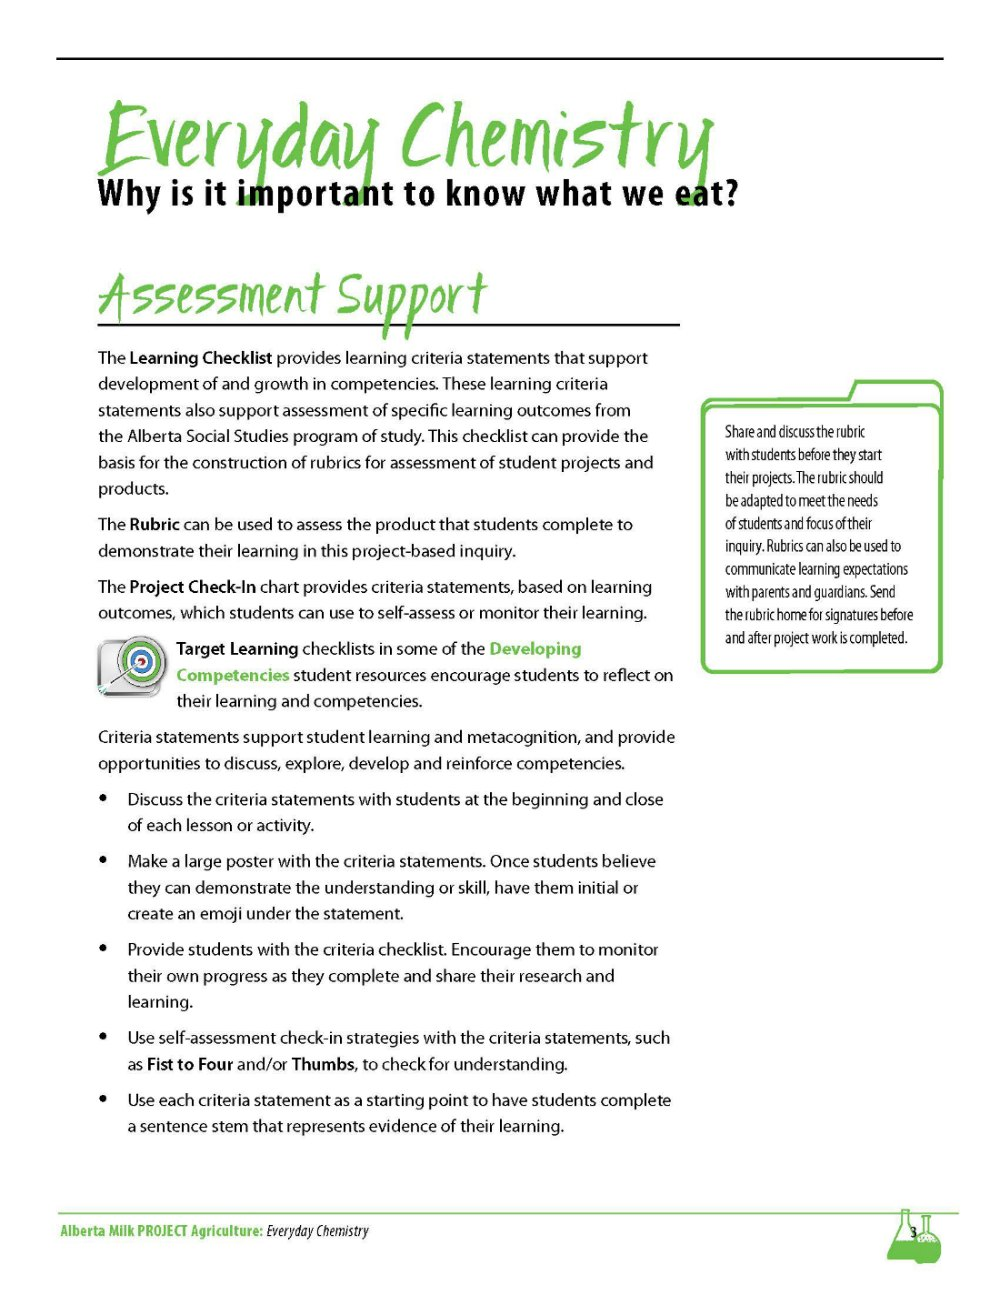 Everyday Chem Asssessment Support Preview | Alberta Milk